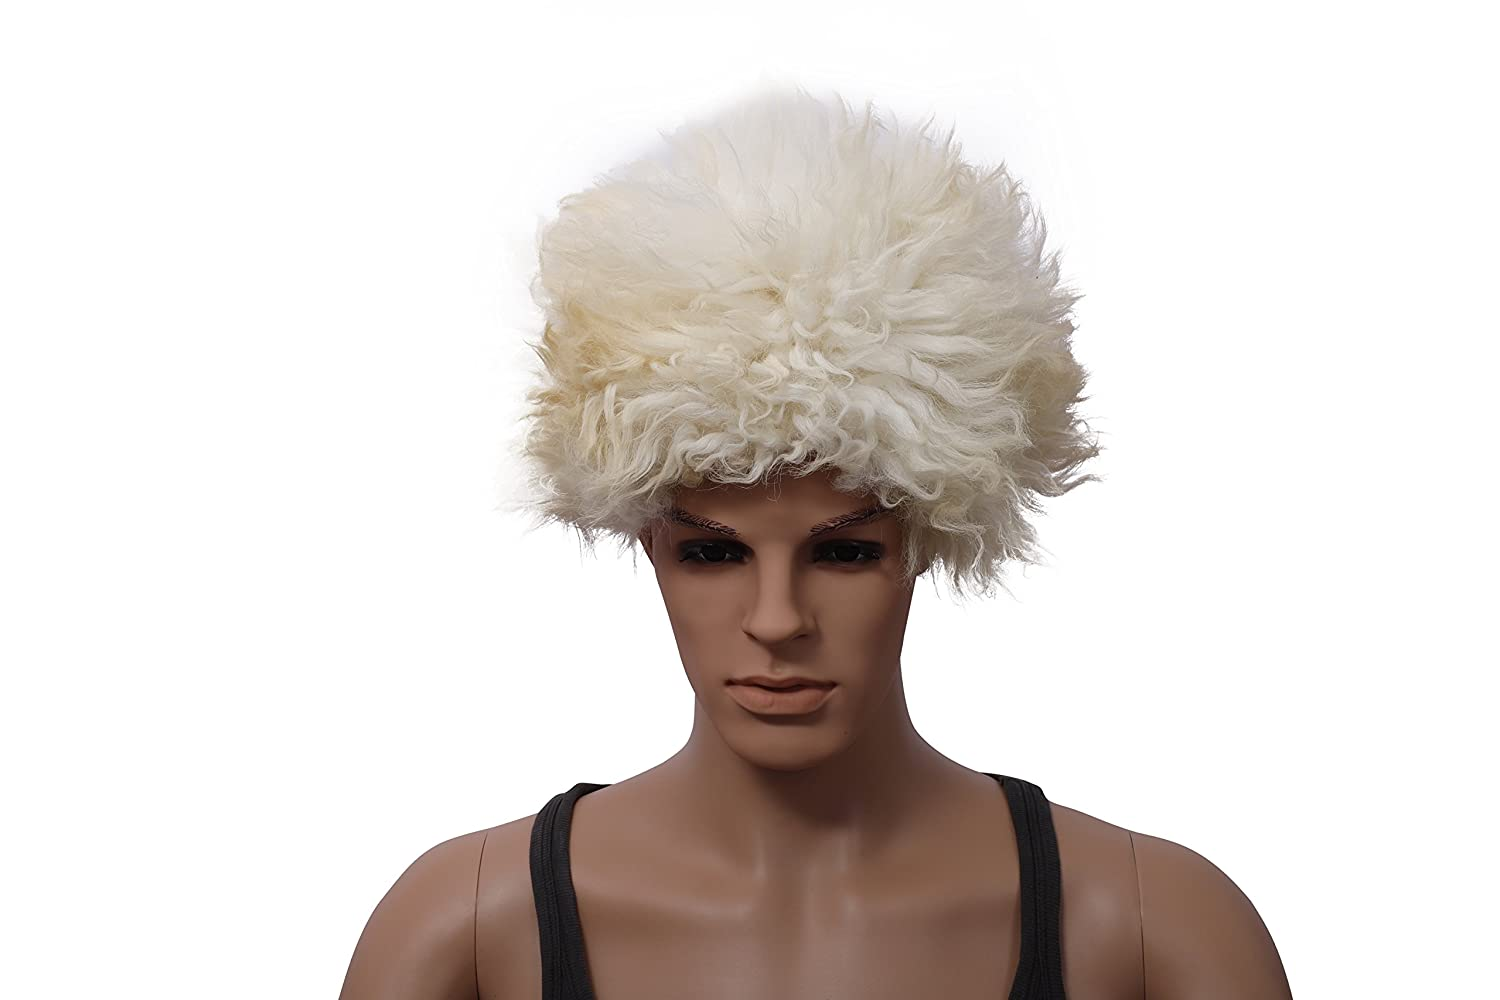 Khabib Nurmagomedov Hat Papakha Free Size With Adjustable Strap Amazon In Clothing Accessories